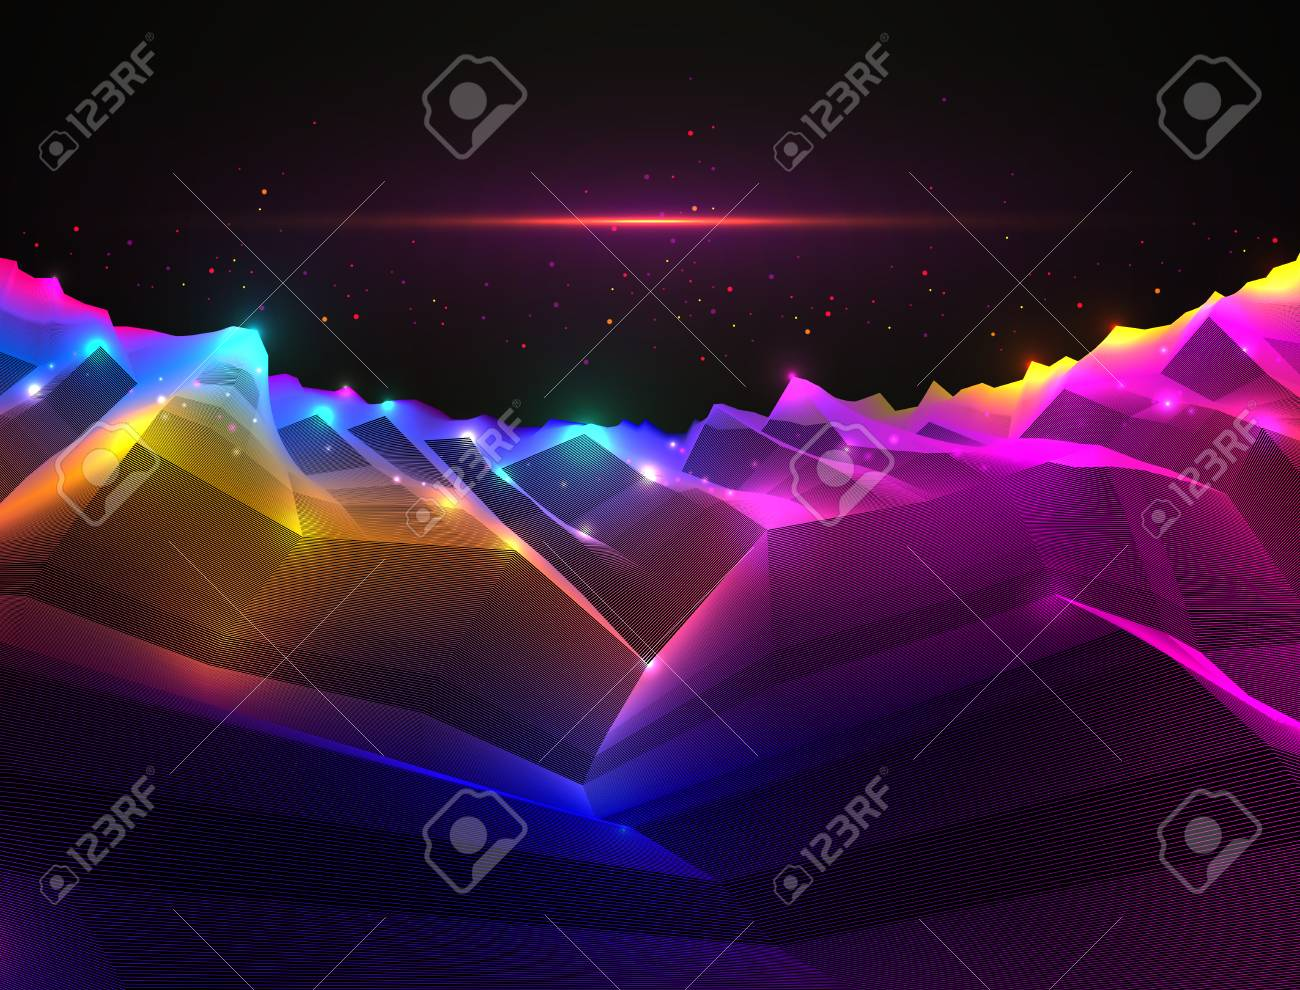 Fantastic space planet terrain vector illustration, cosmos science fiction great 3d design. Usable as abstract background with copy space for title and text. - 113480929